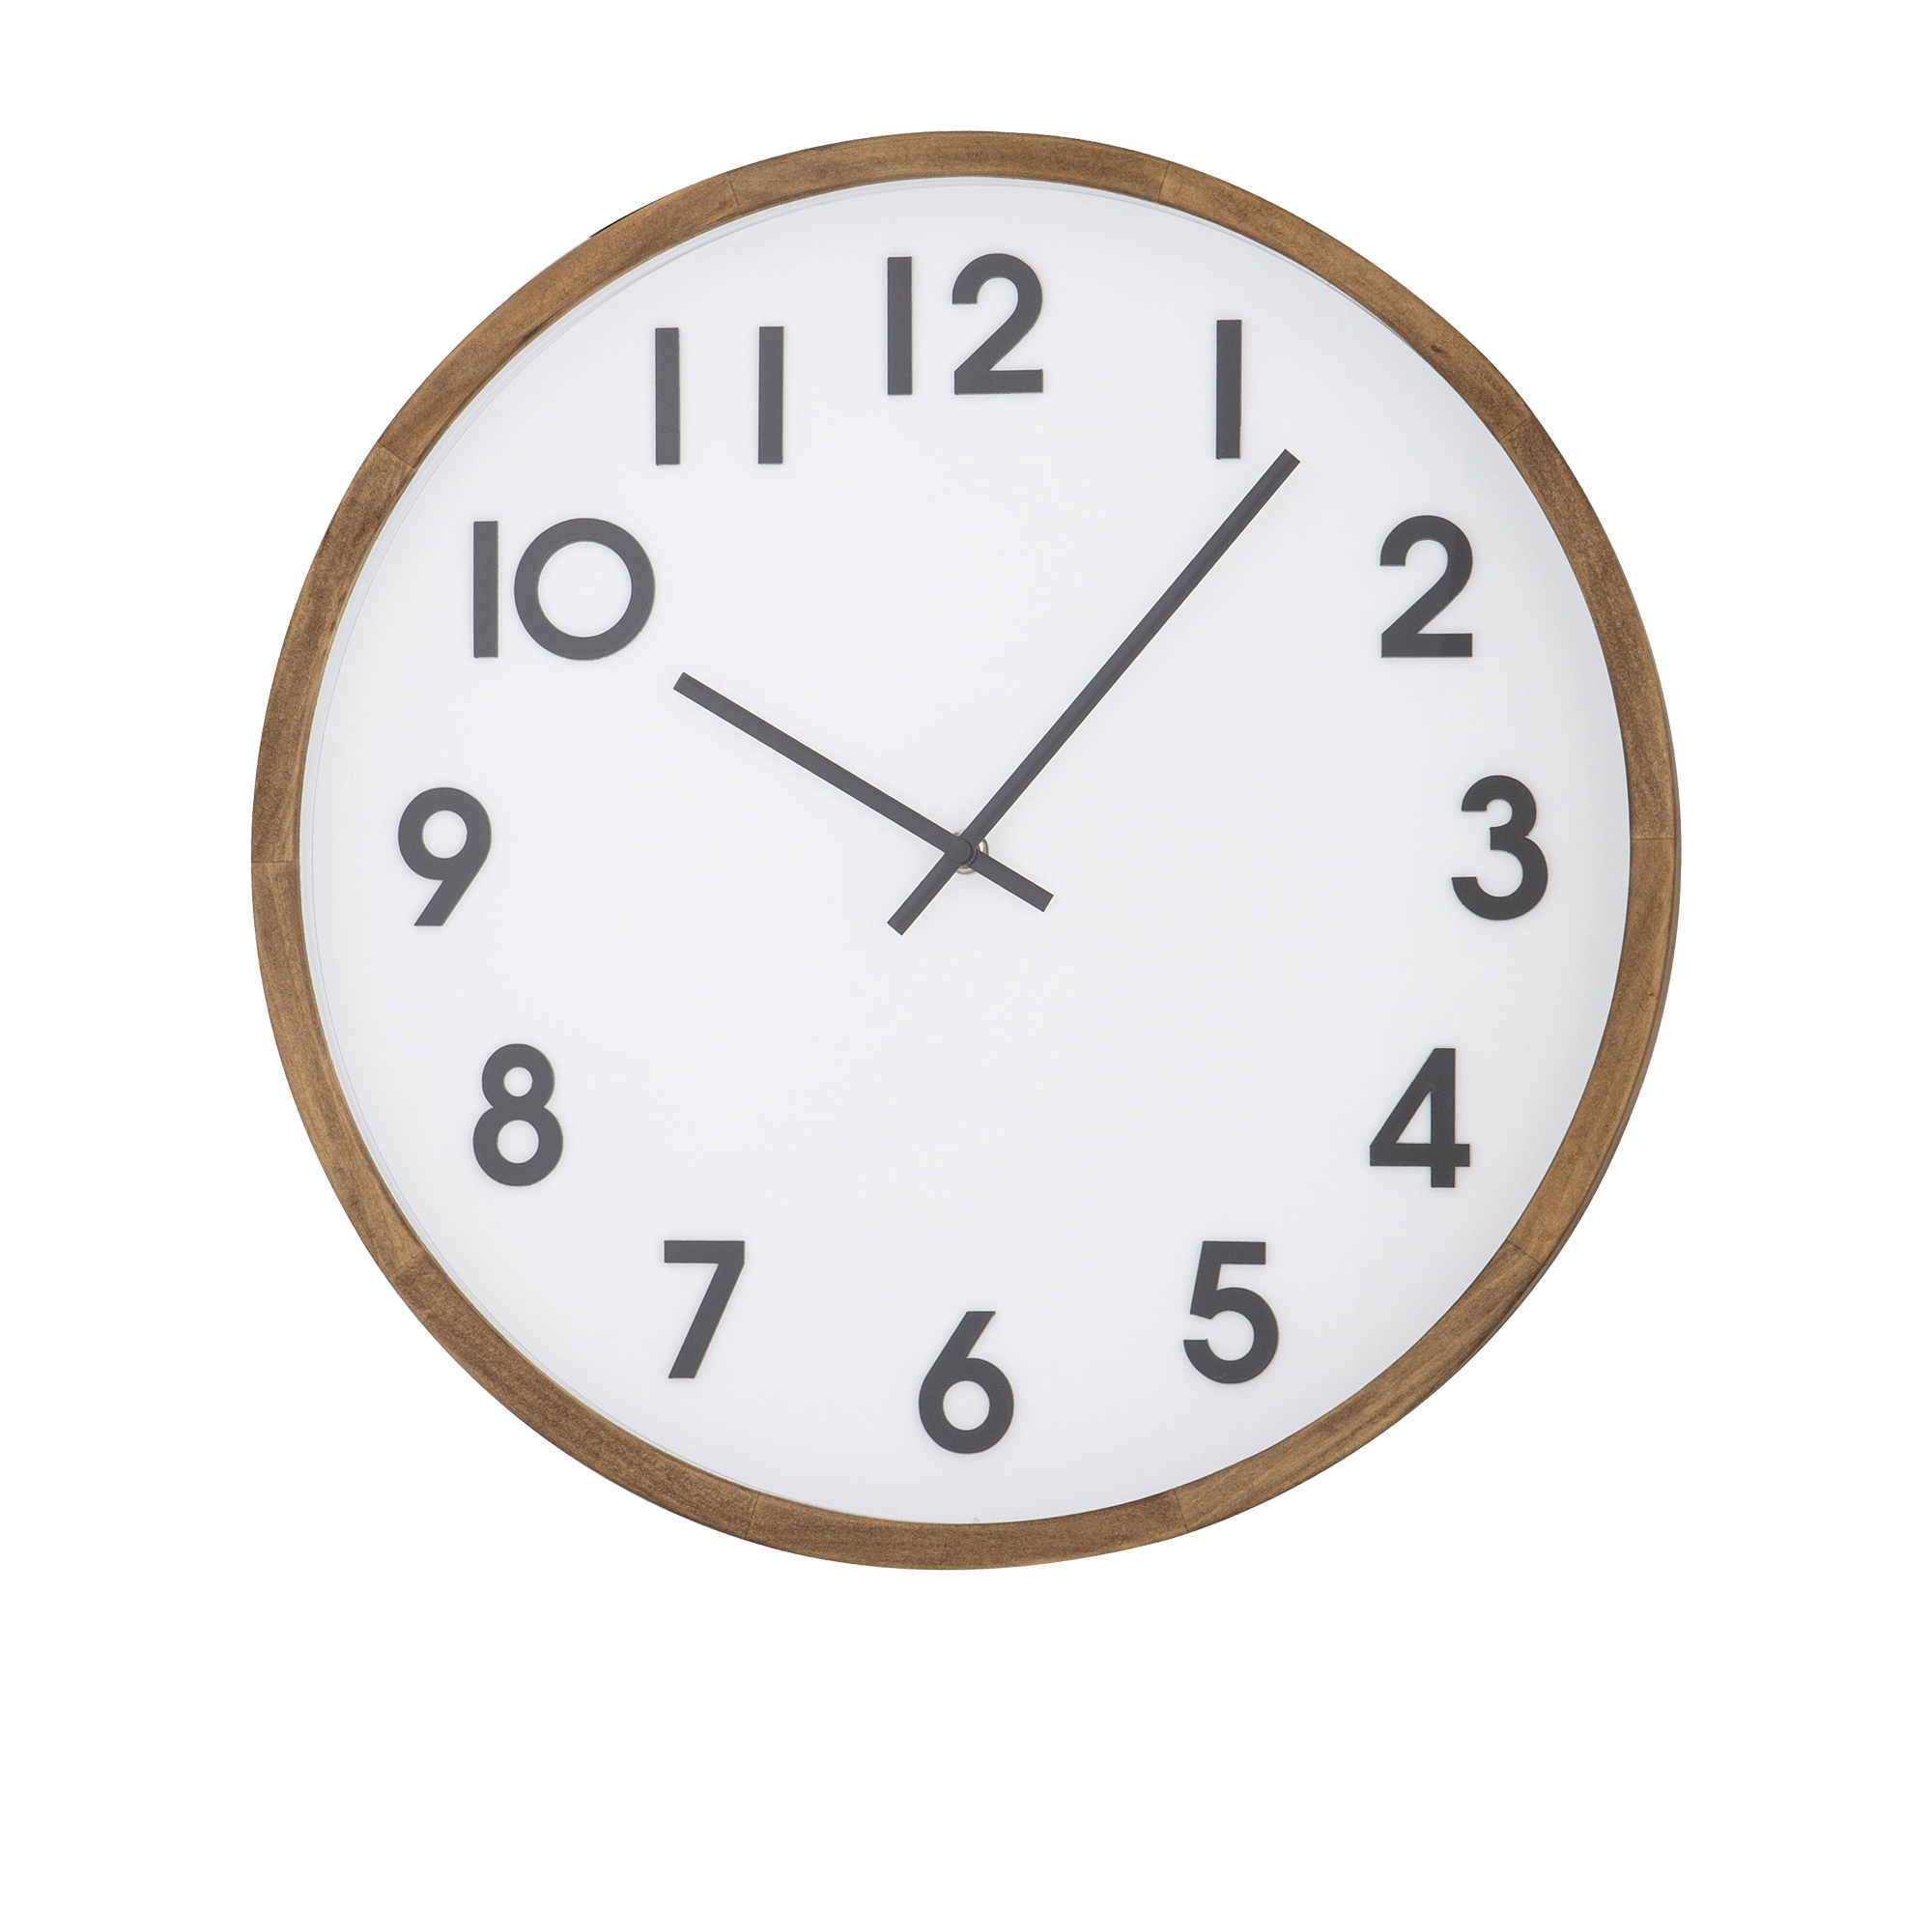 Amalfi Leonard Wall Clock 41.5cm White, Black & Natural